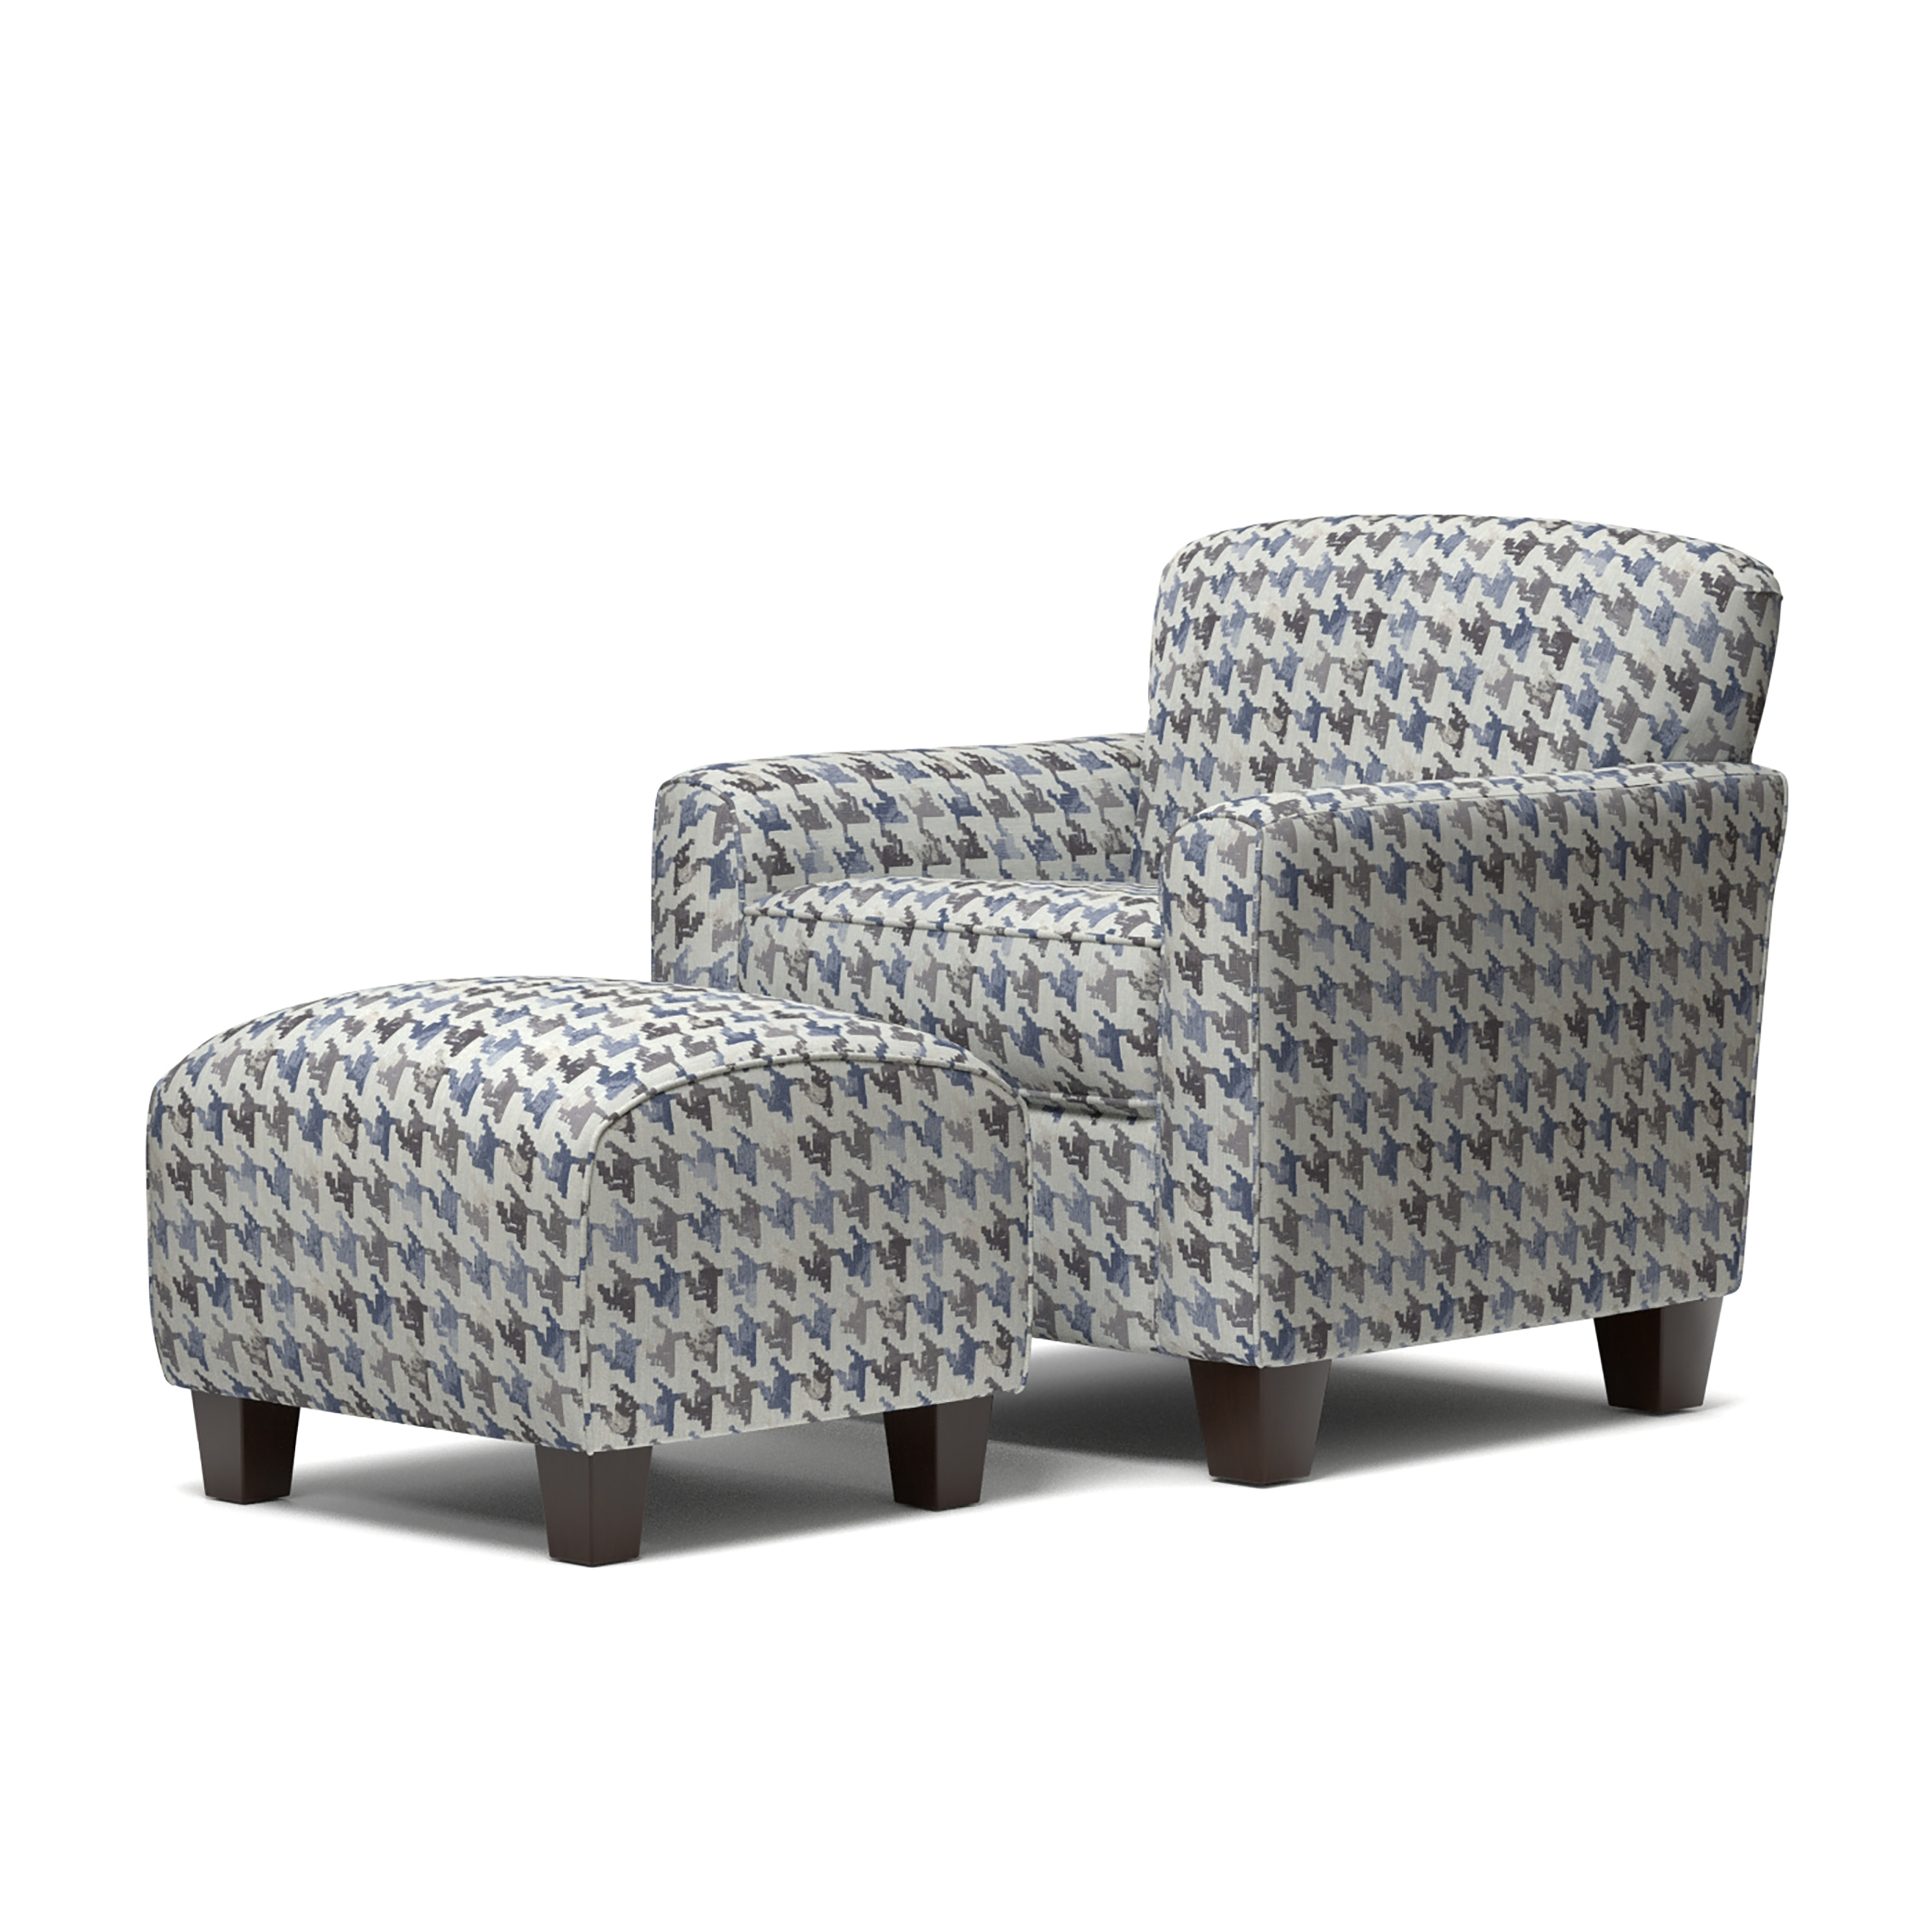 pinterest creston chairs ottoman furniture overstock tufted linen cocktail and ottomans chair pin